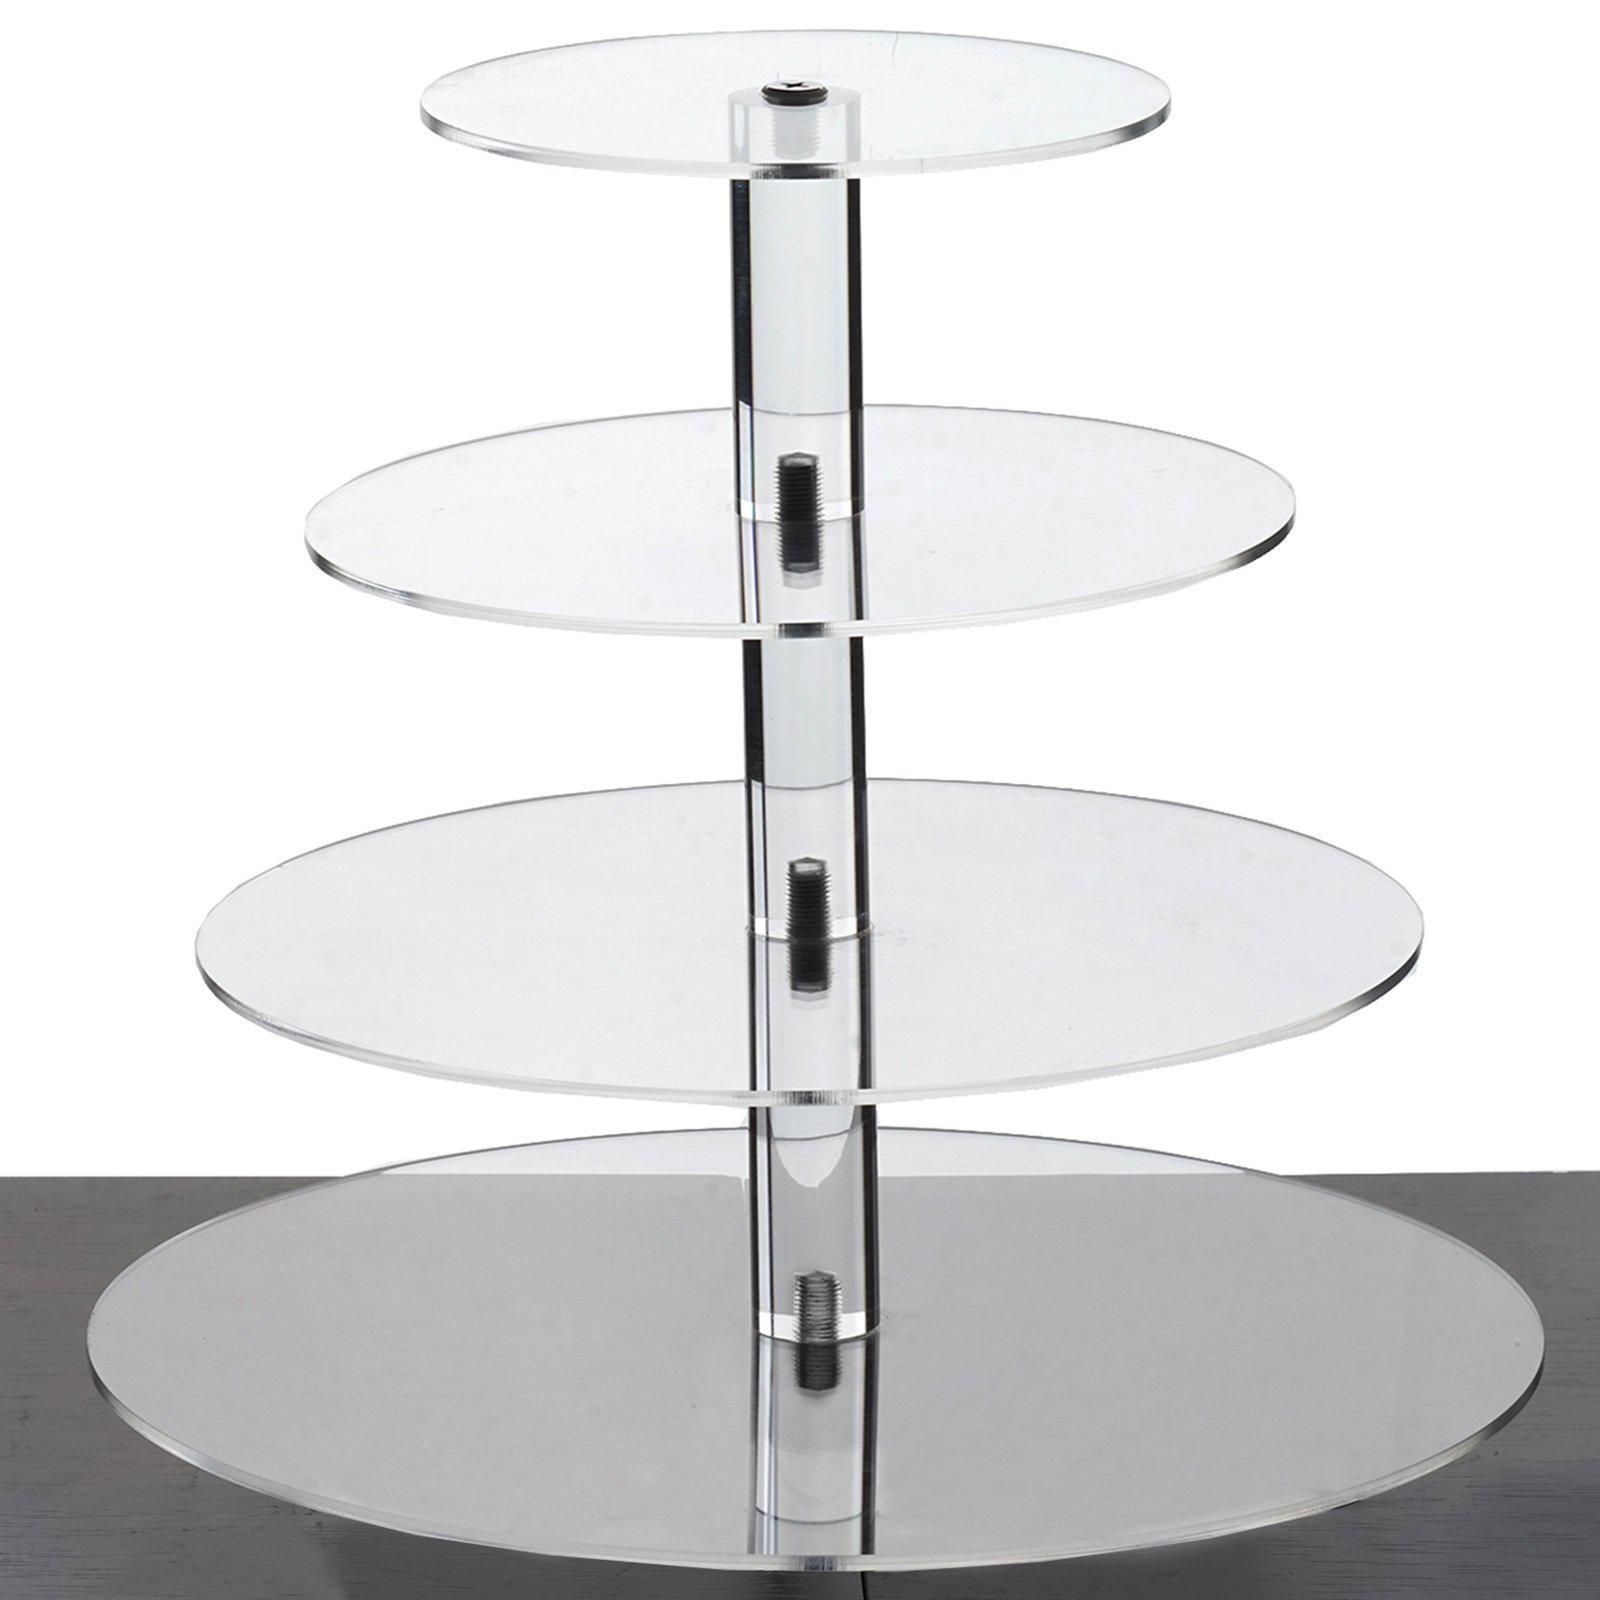 4 Tier 12 Round Acrylic Cake Stand Tiered Cupcake Stand